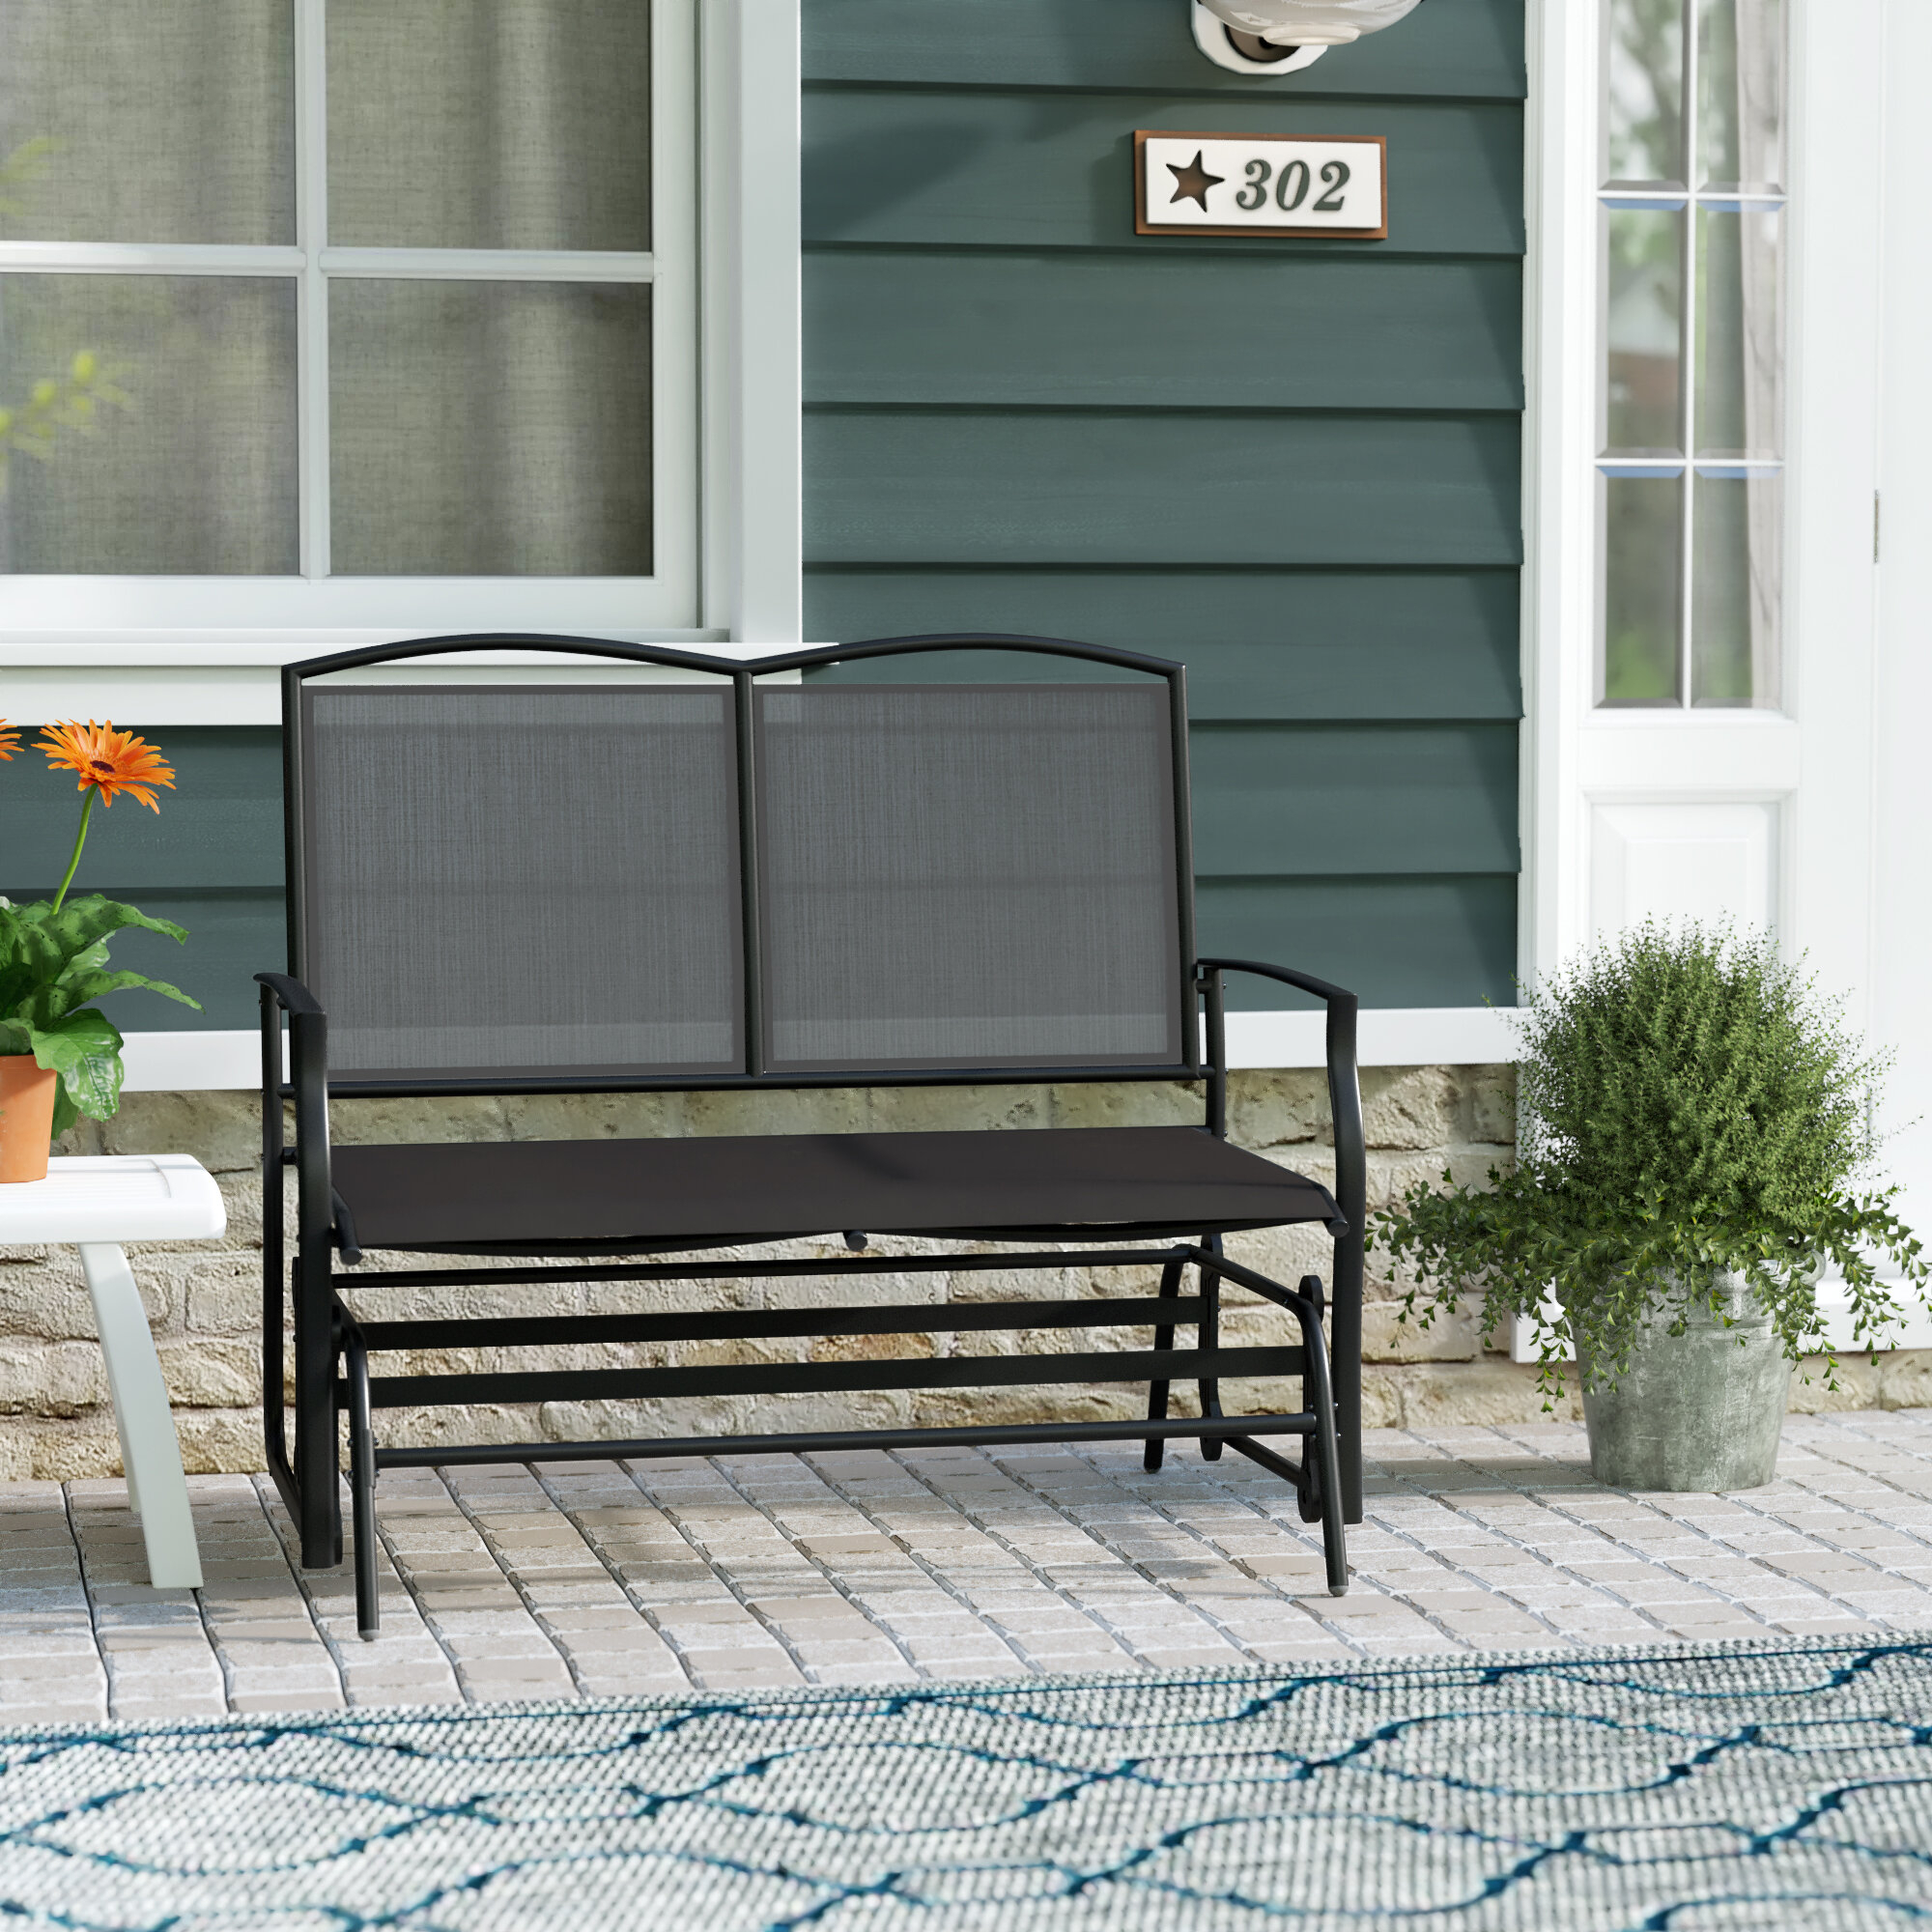 Ashong 2 Seat Steel Glider Bench Pertaining To Black Steel Patio Swing Glider Benches Powder Coated (Image 2 of 25)